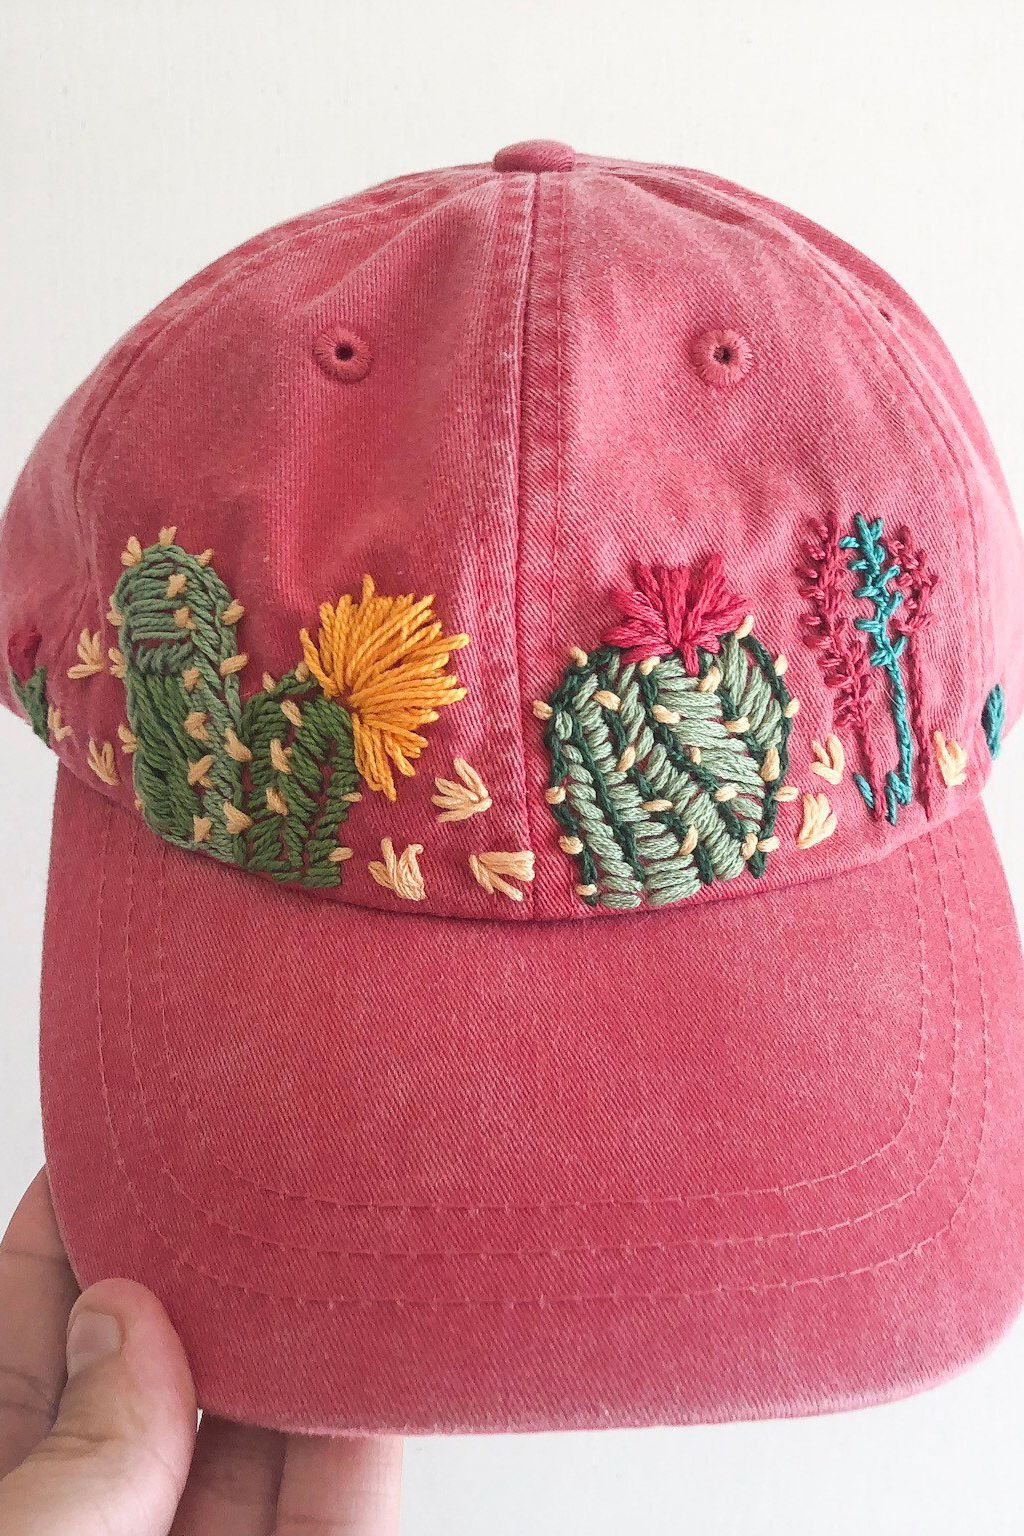 Hand Embroidered Hat Embroidered Cactus Hat Floral Etsy In 2021 Hand Embroidered Hat Hand Embroidery Embroidered Cactus